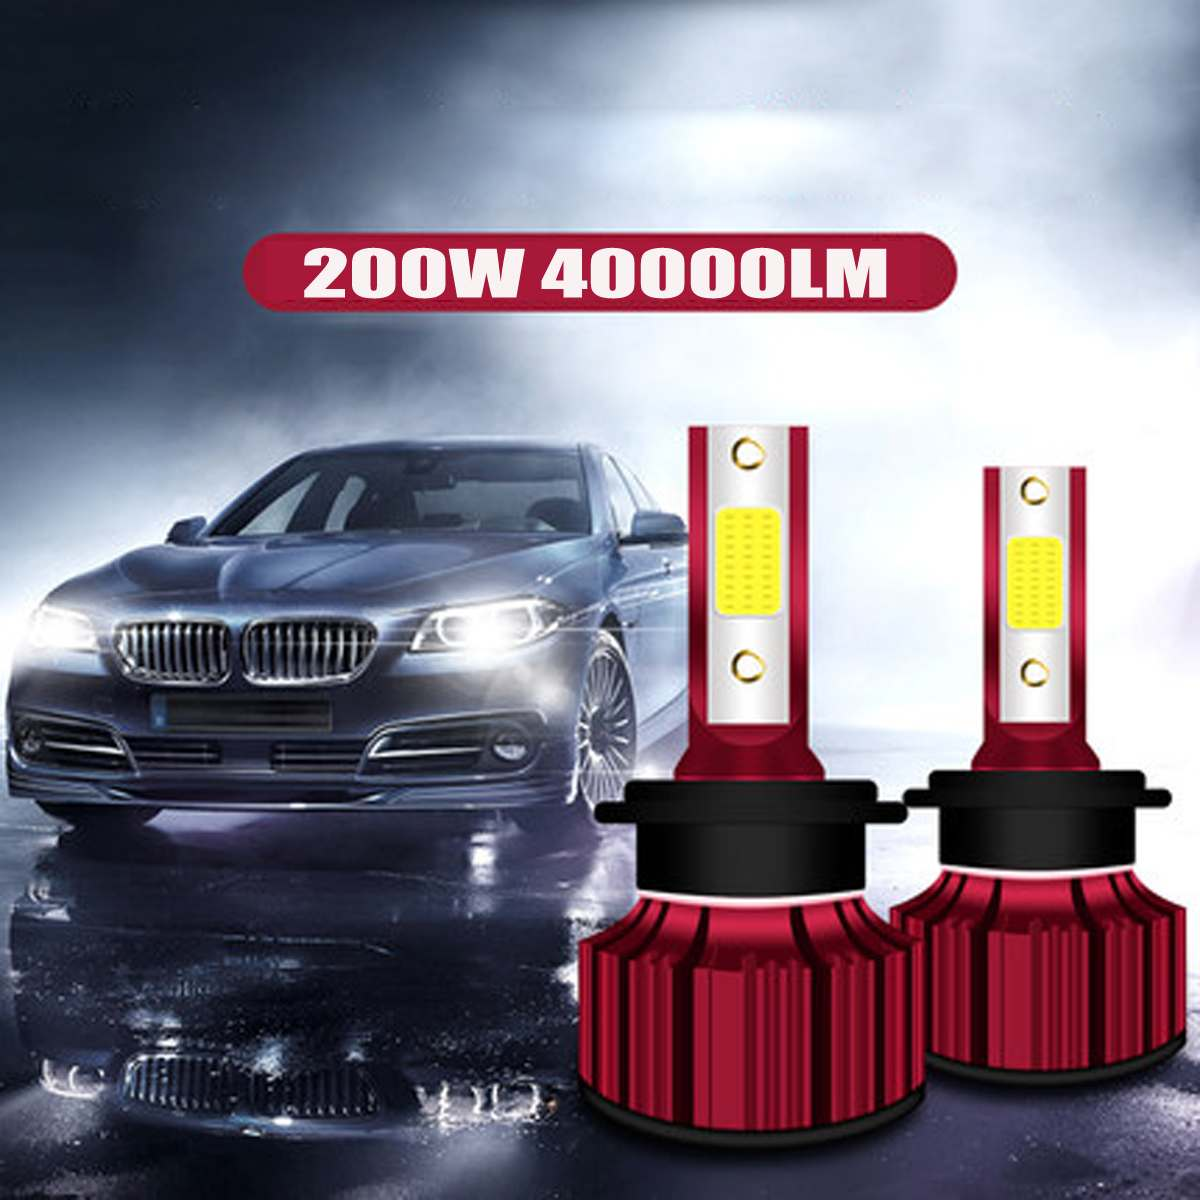 2x 40000LM Car LED Headlight Bubls Mini Headlight Kit for High Power Bulb fog Light 6000K White H7 H8 H9 H11 H4 9003 HB4 image